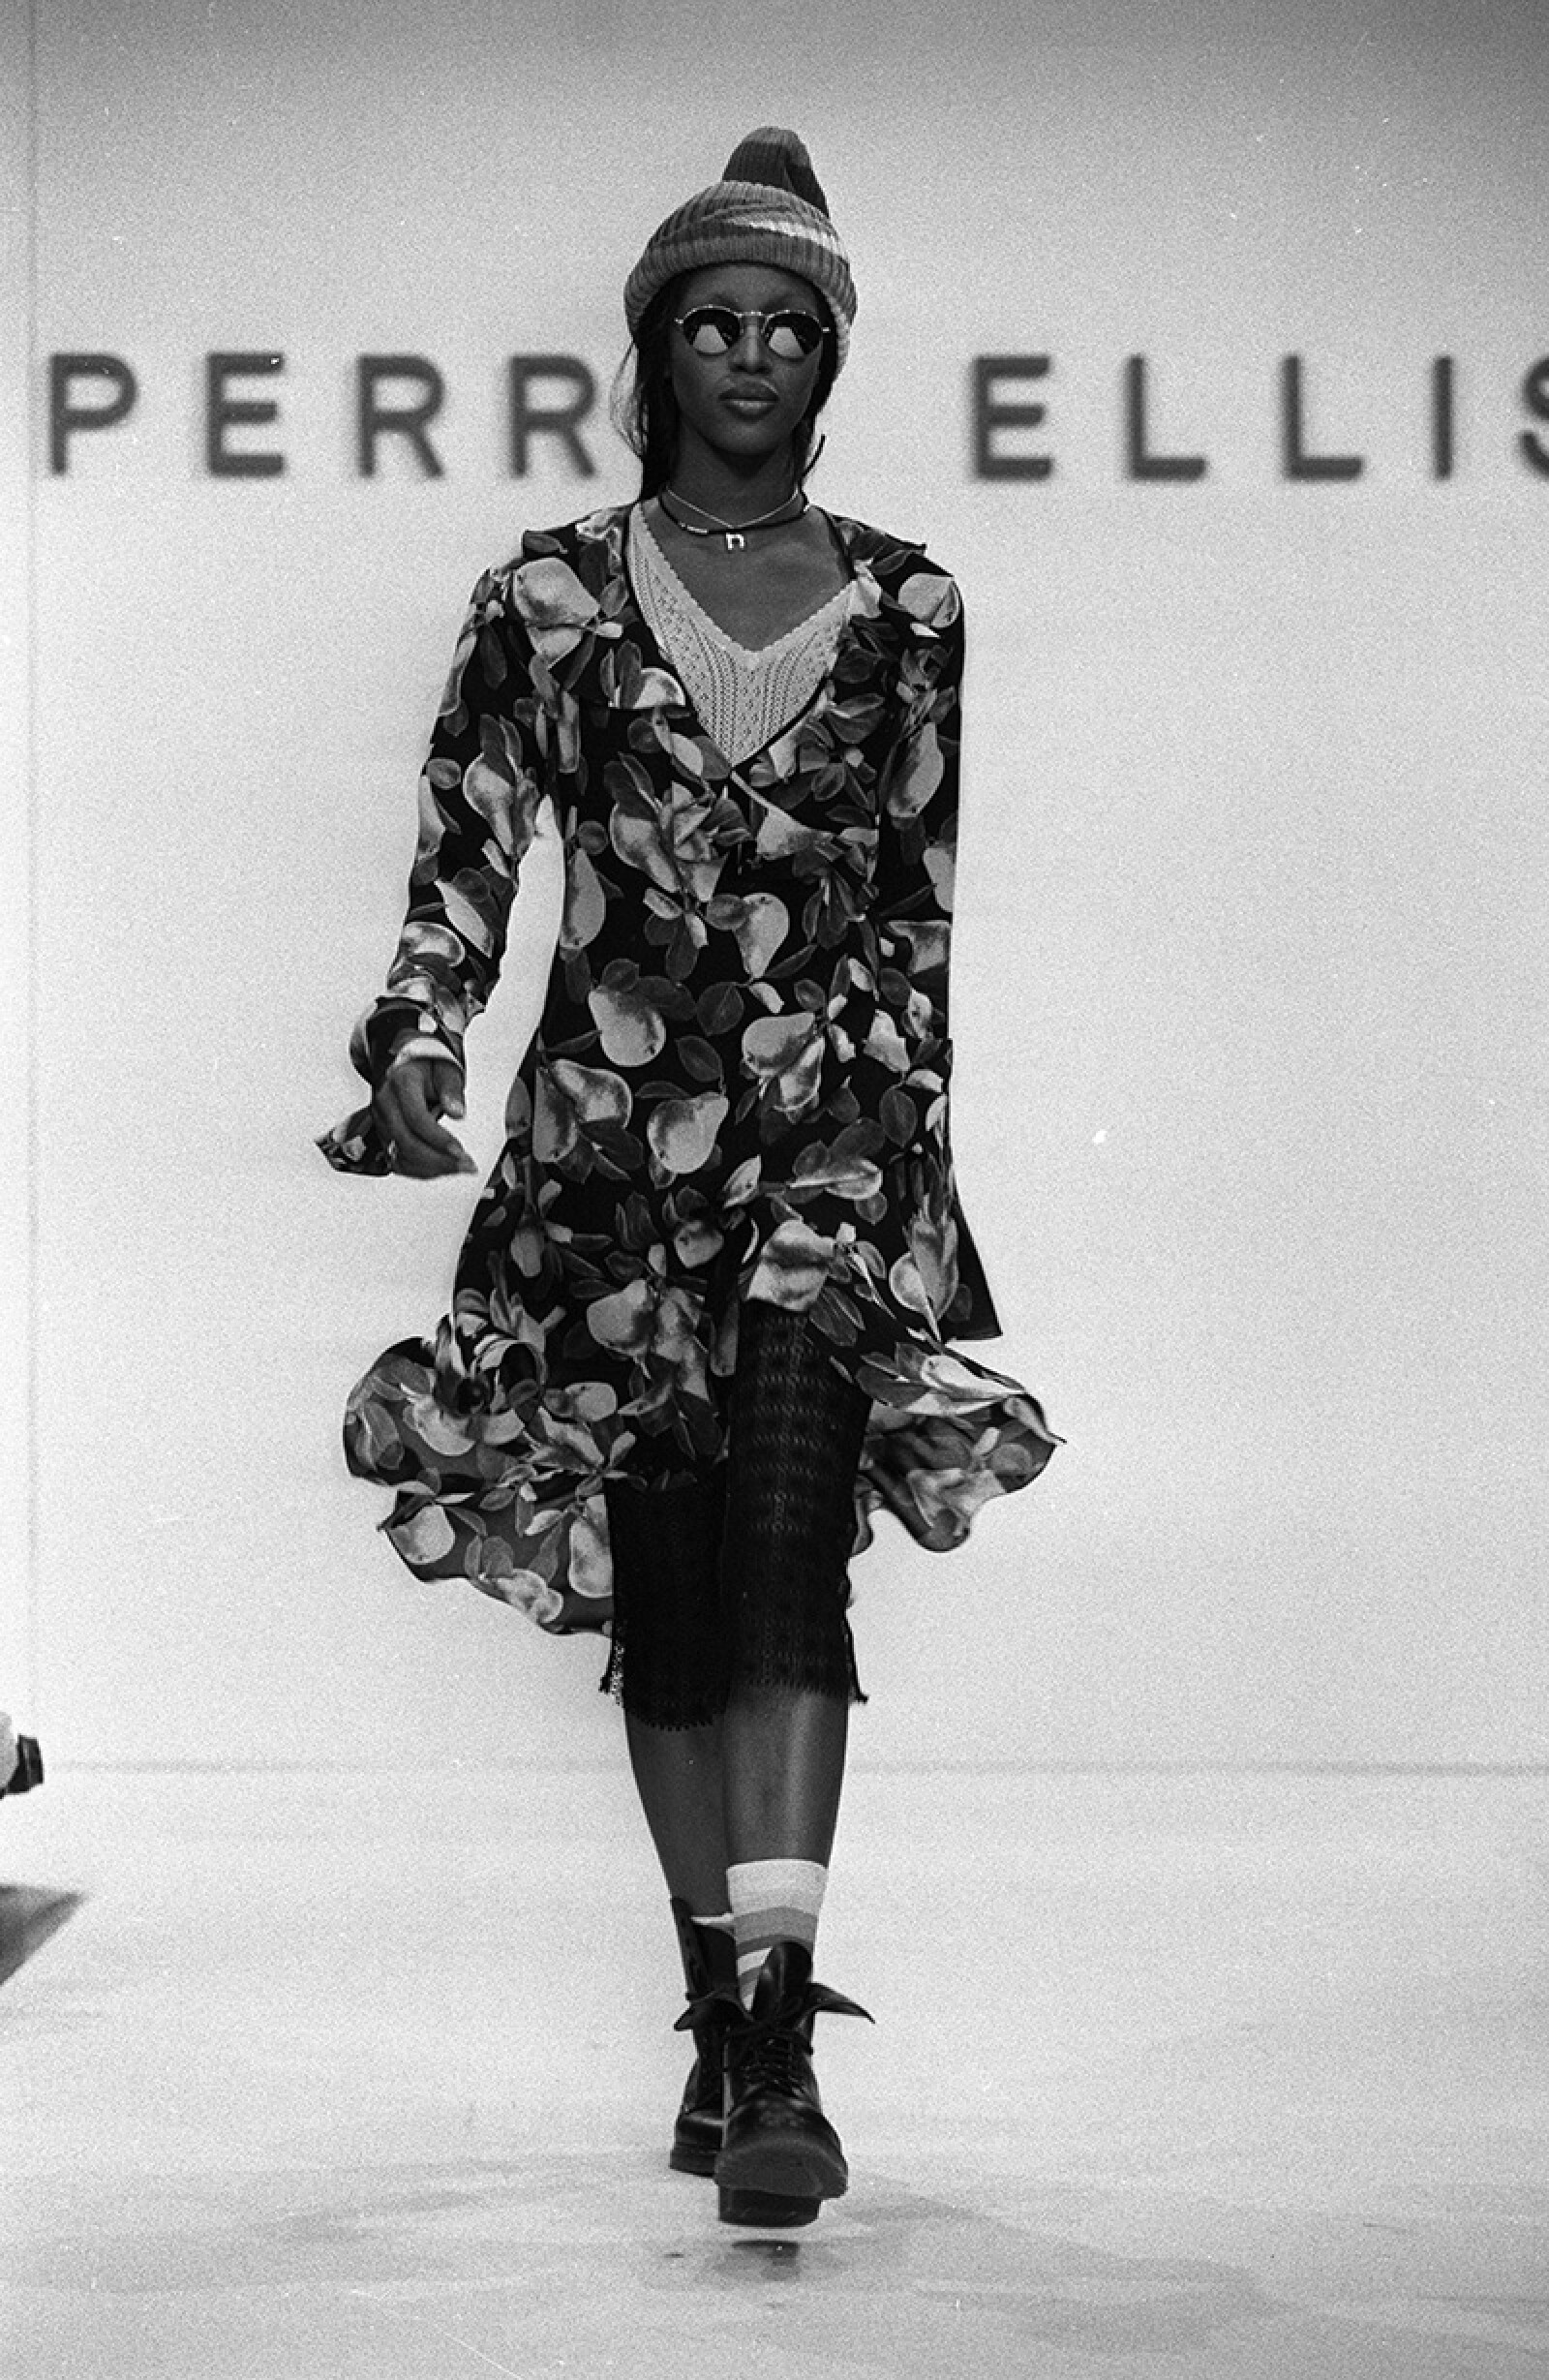 Perry Ellis RTW Spring 1993 Collection, New York